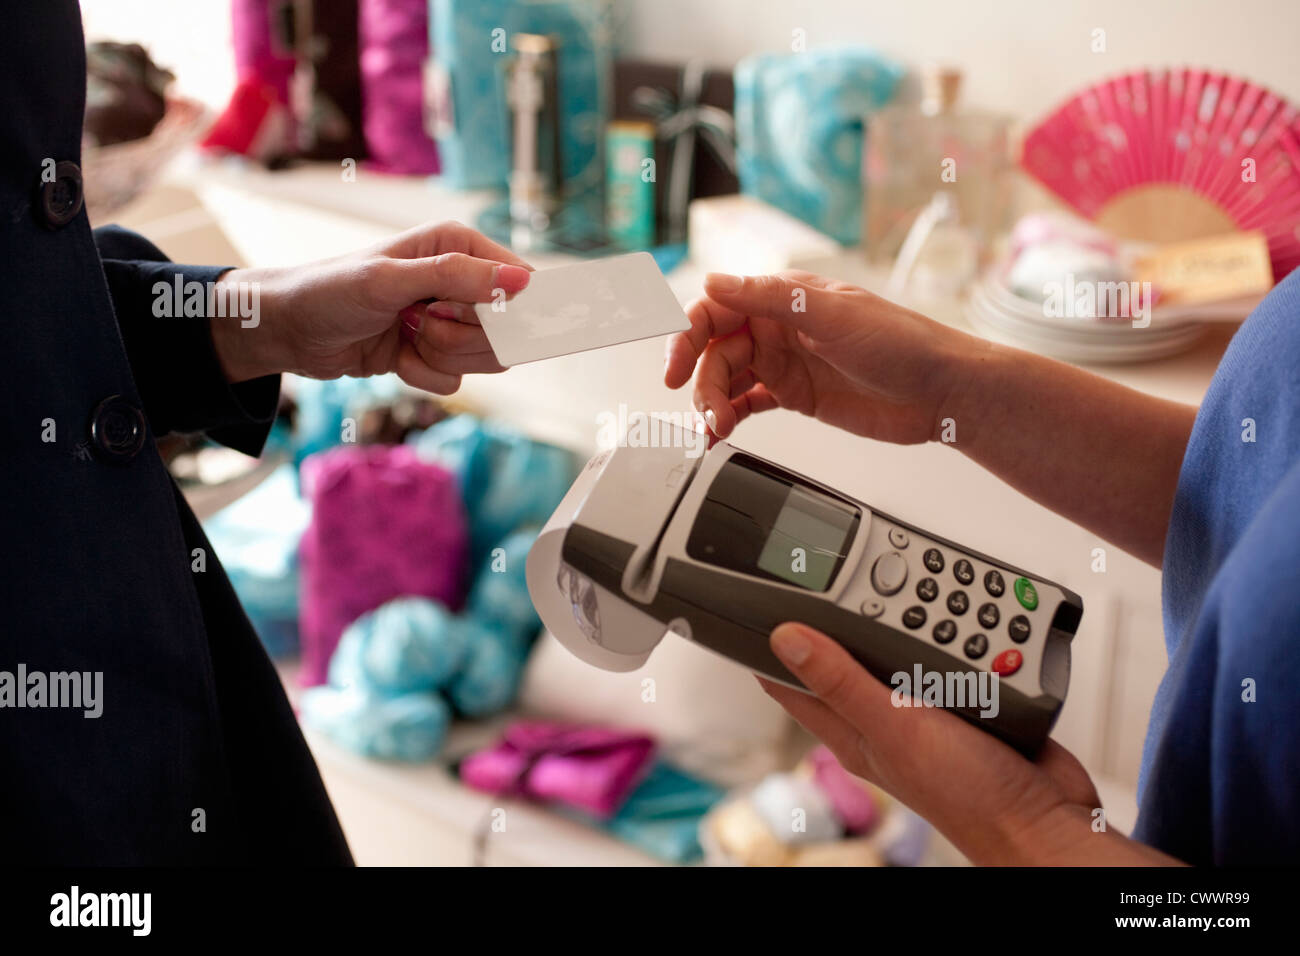 Femme de payer par carte de crédit en magasin Photo Stock